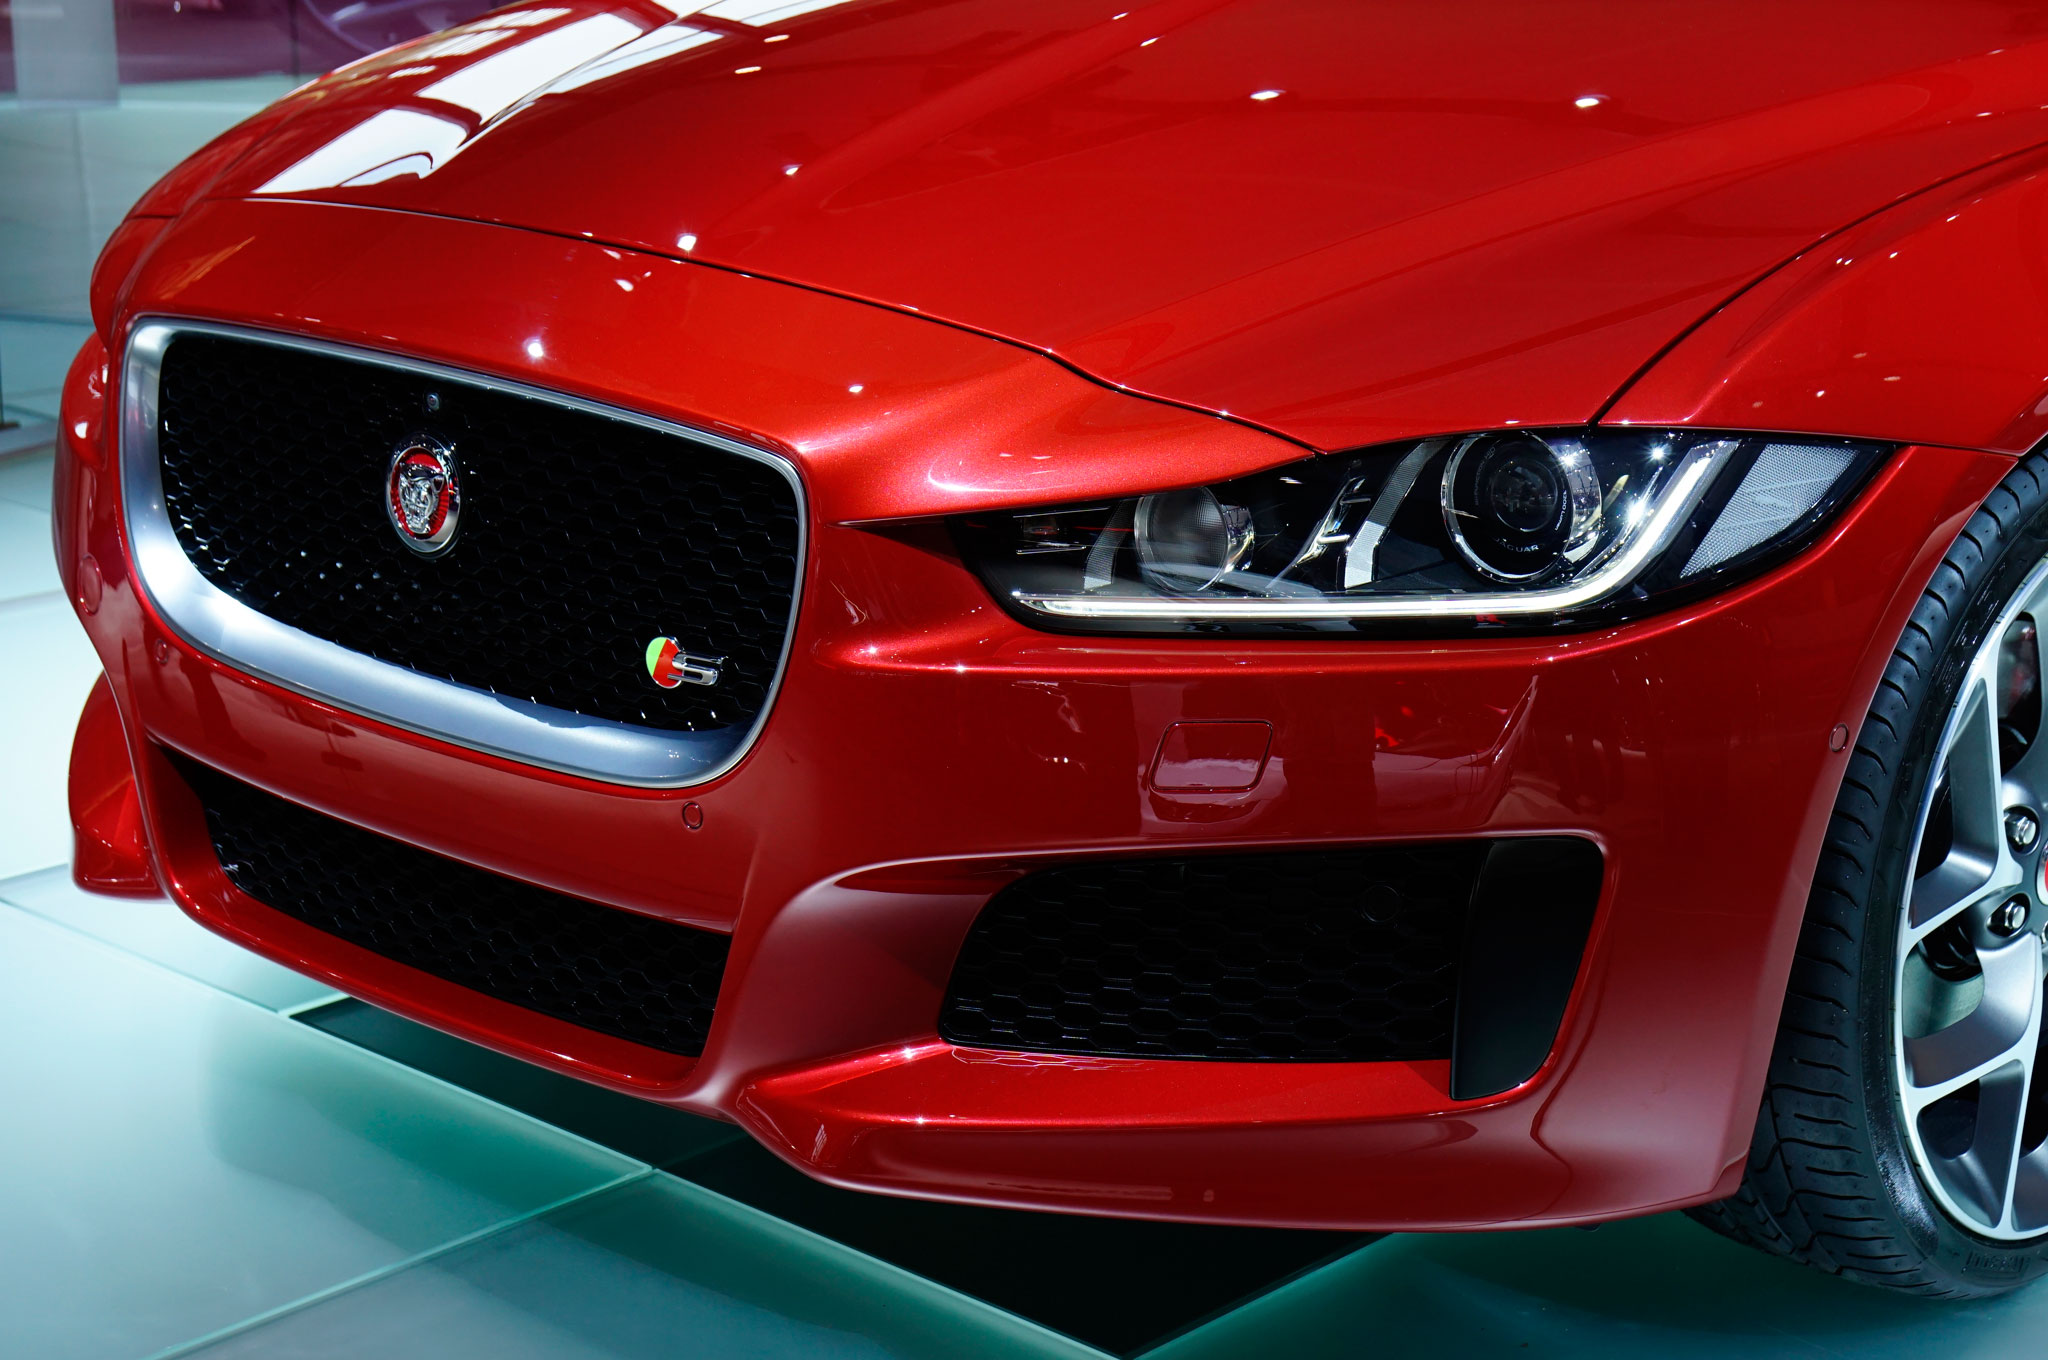 2016 Jaguar Xe Front Headlamp (View 11 of 12)